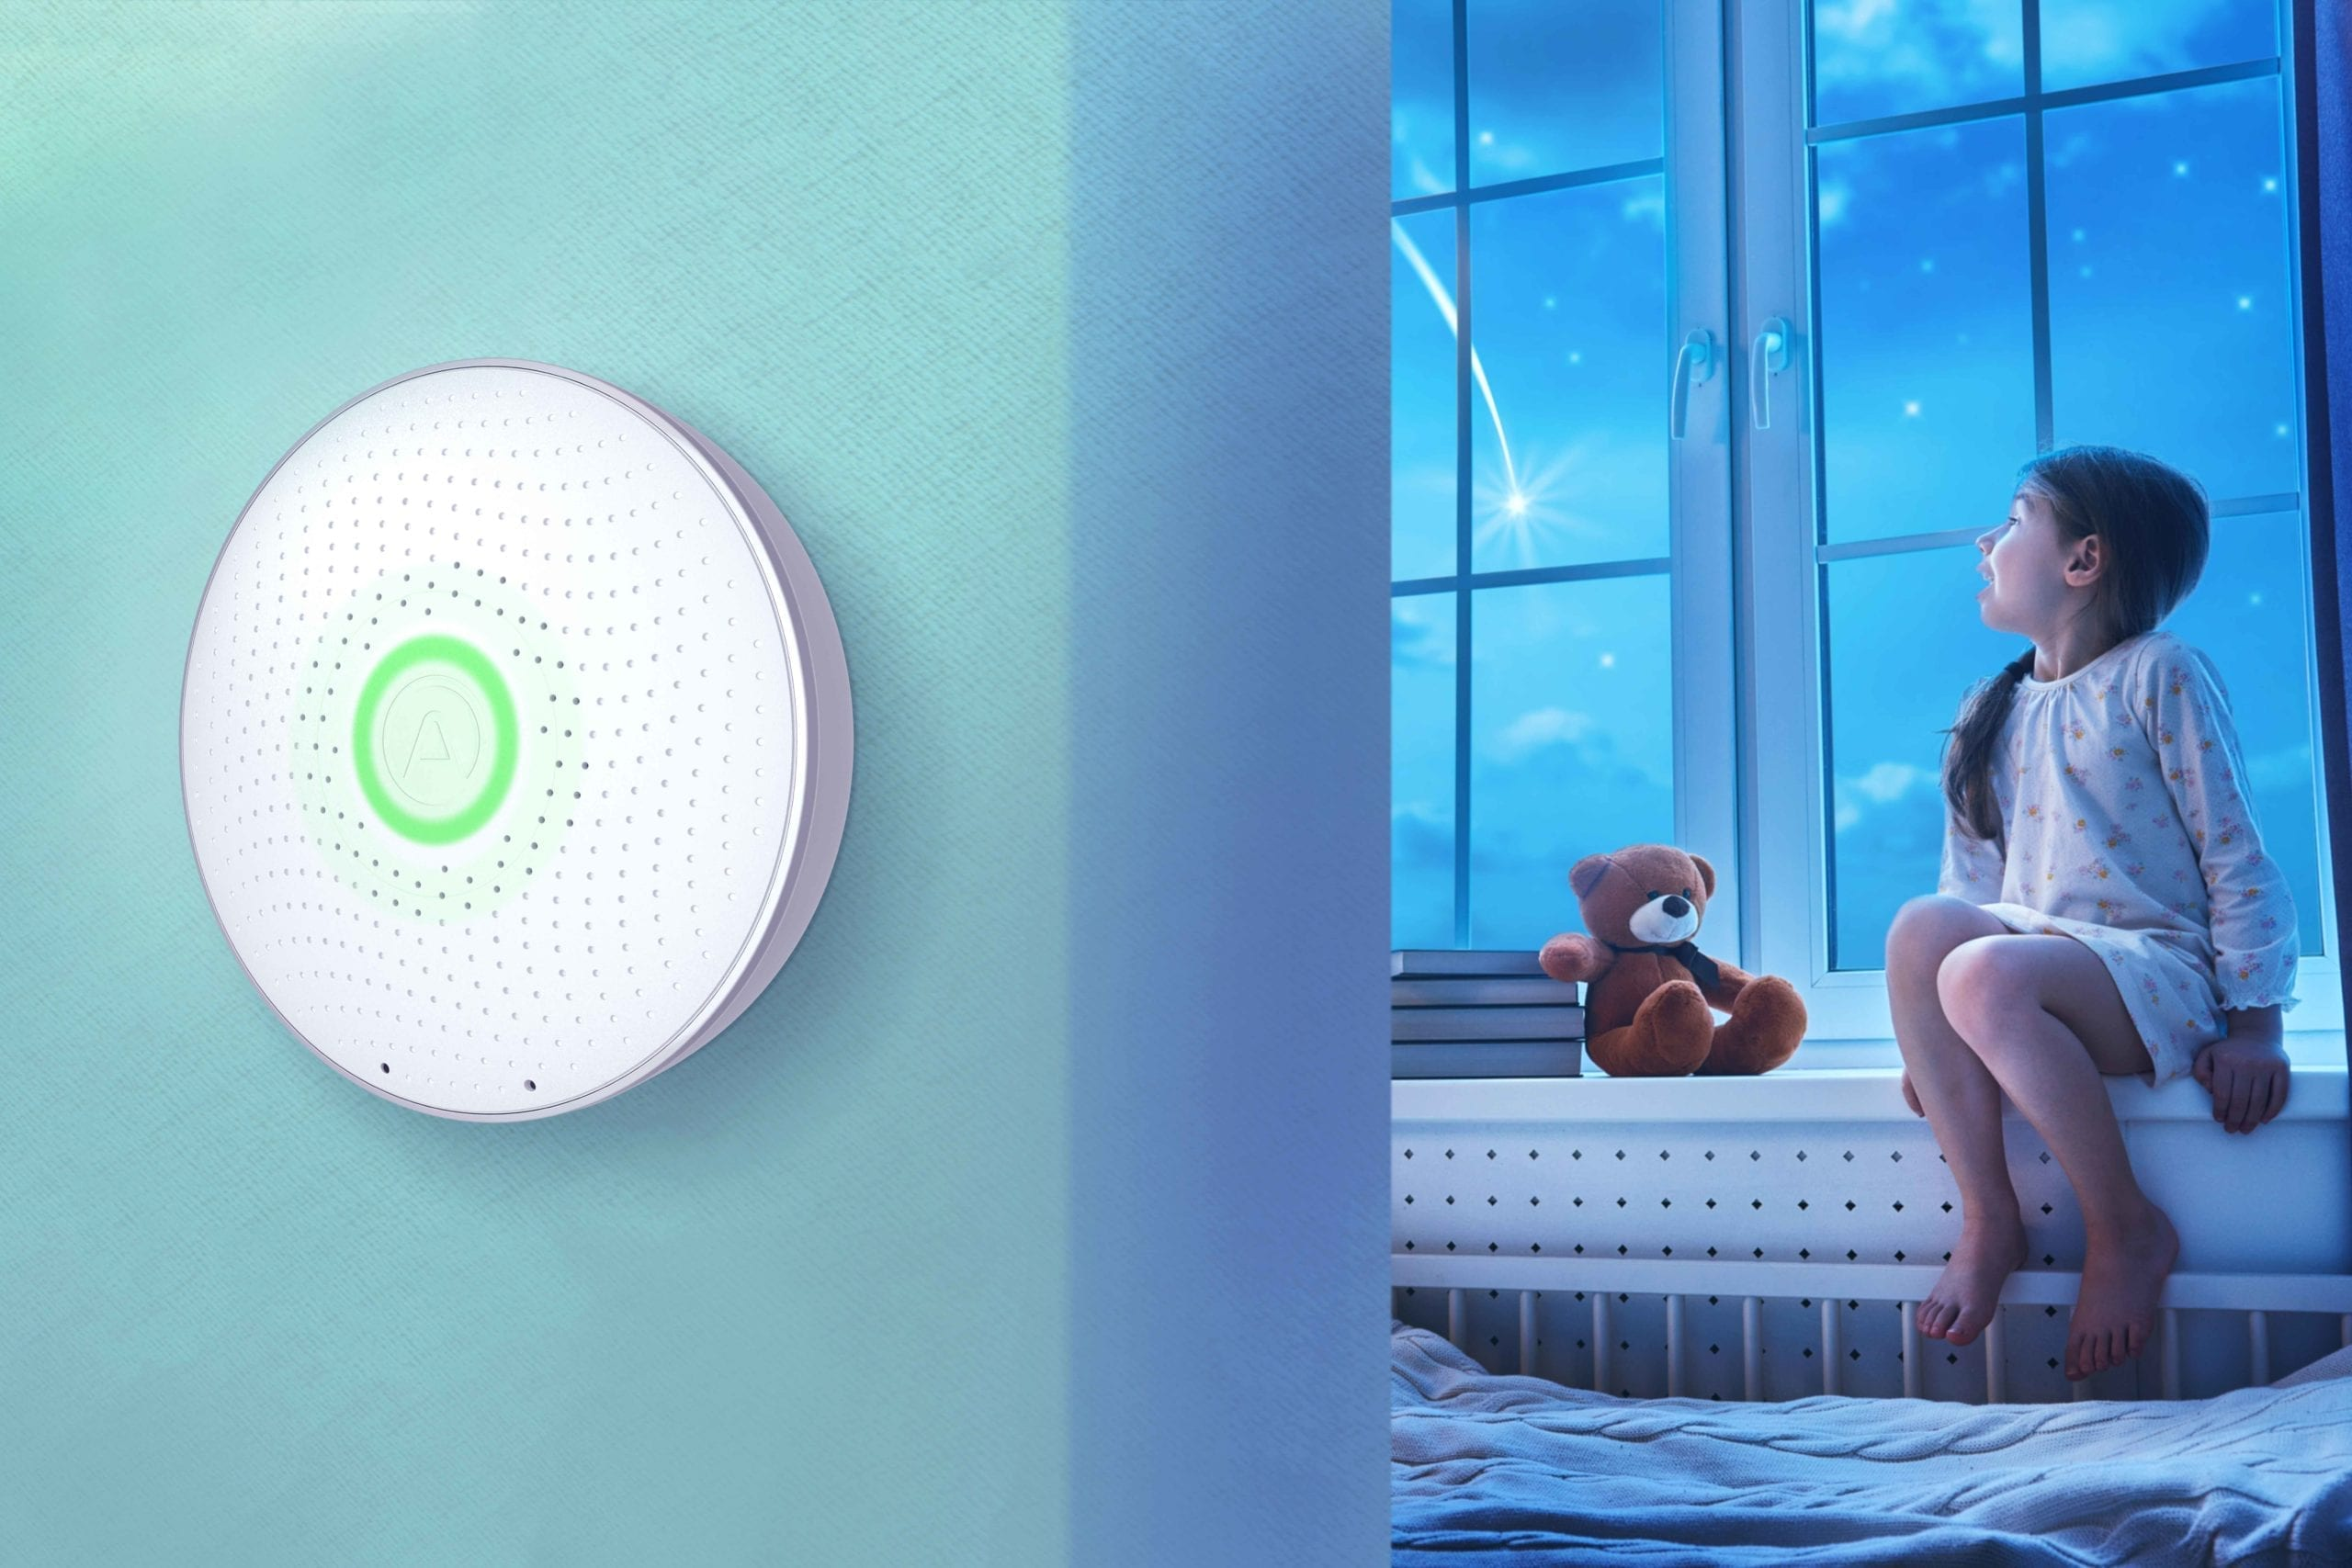 Air quality smart sensor in Hubsai's SmartHome Plan